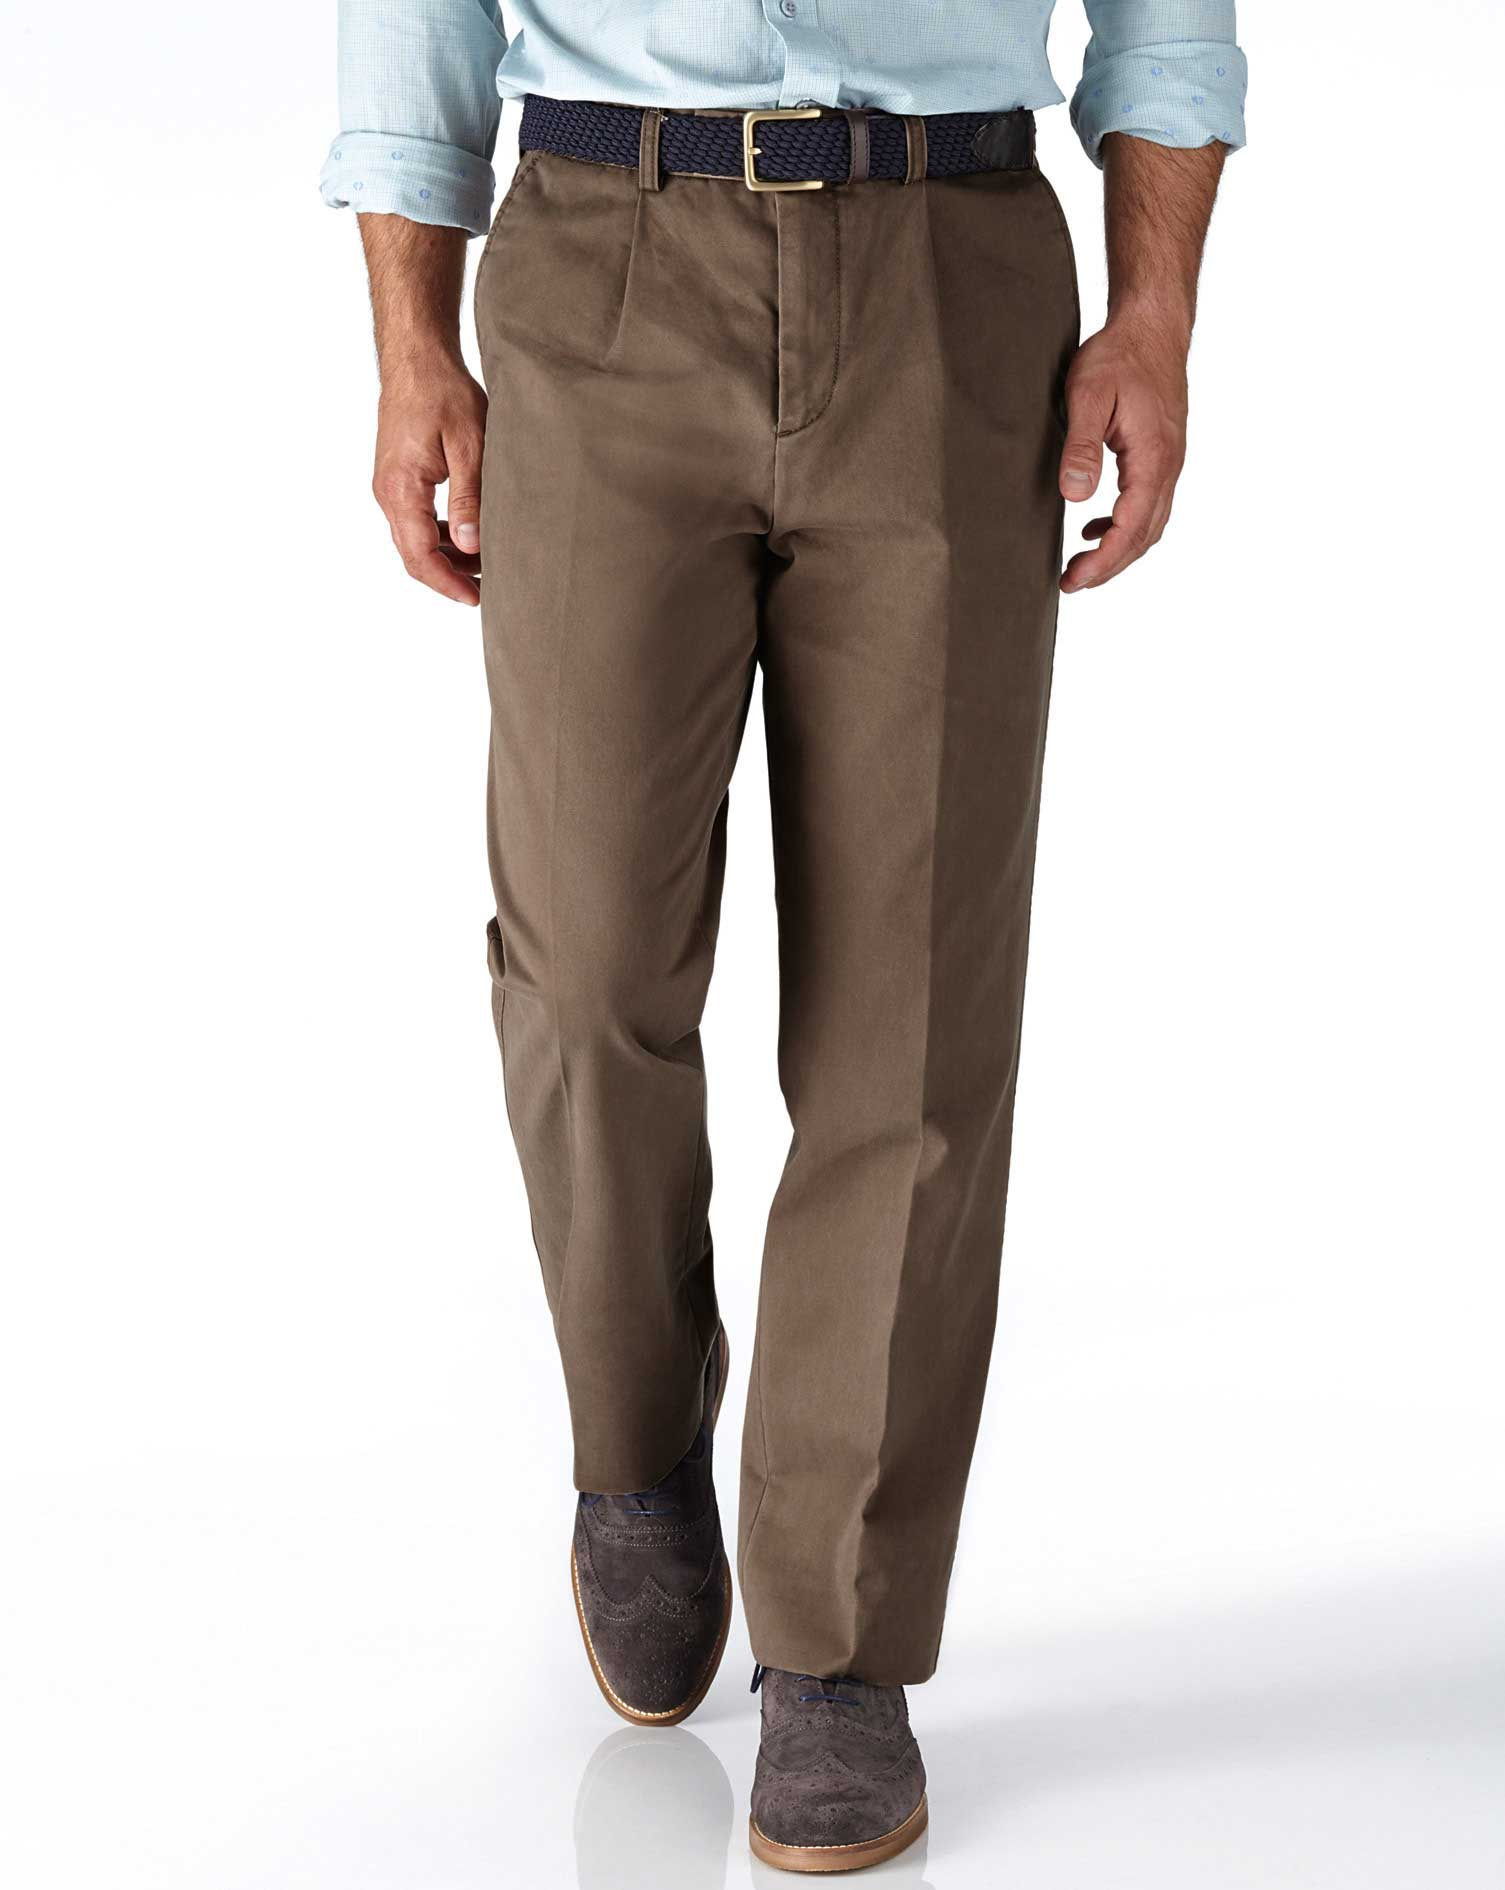 Light Brown Classic Fit Single Pleat Cotton Chino Trousers Size W44 L38 by Charles Tyrwhitt